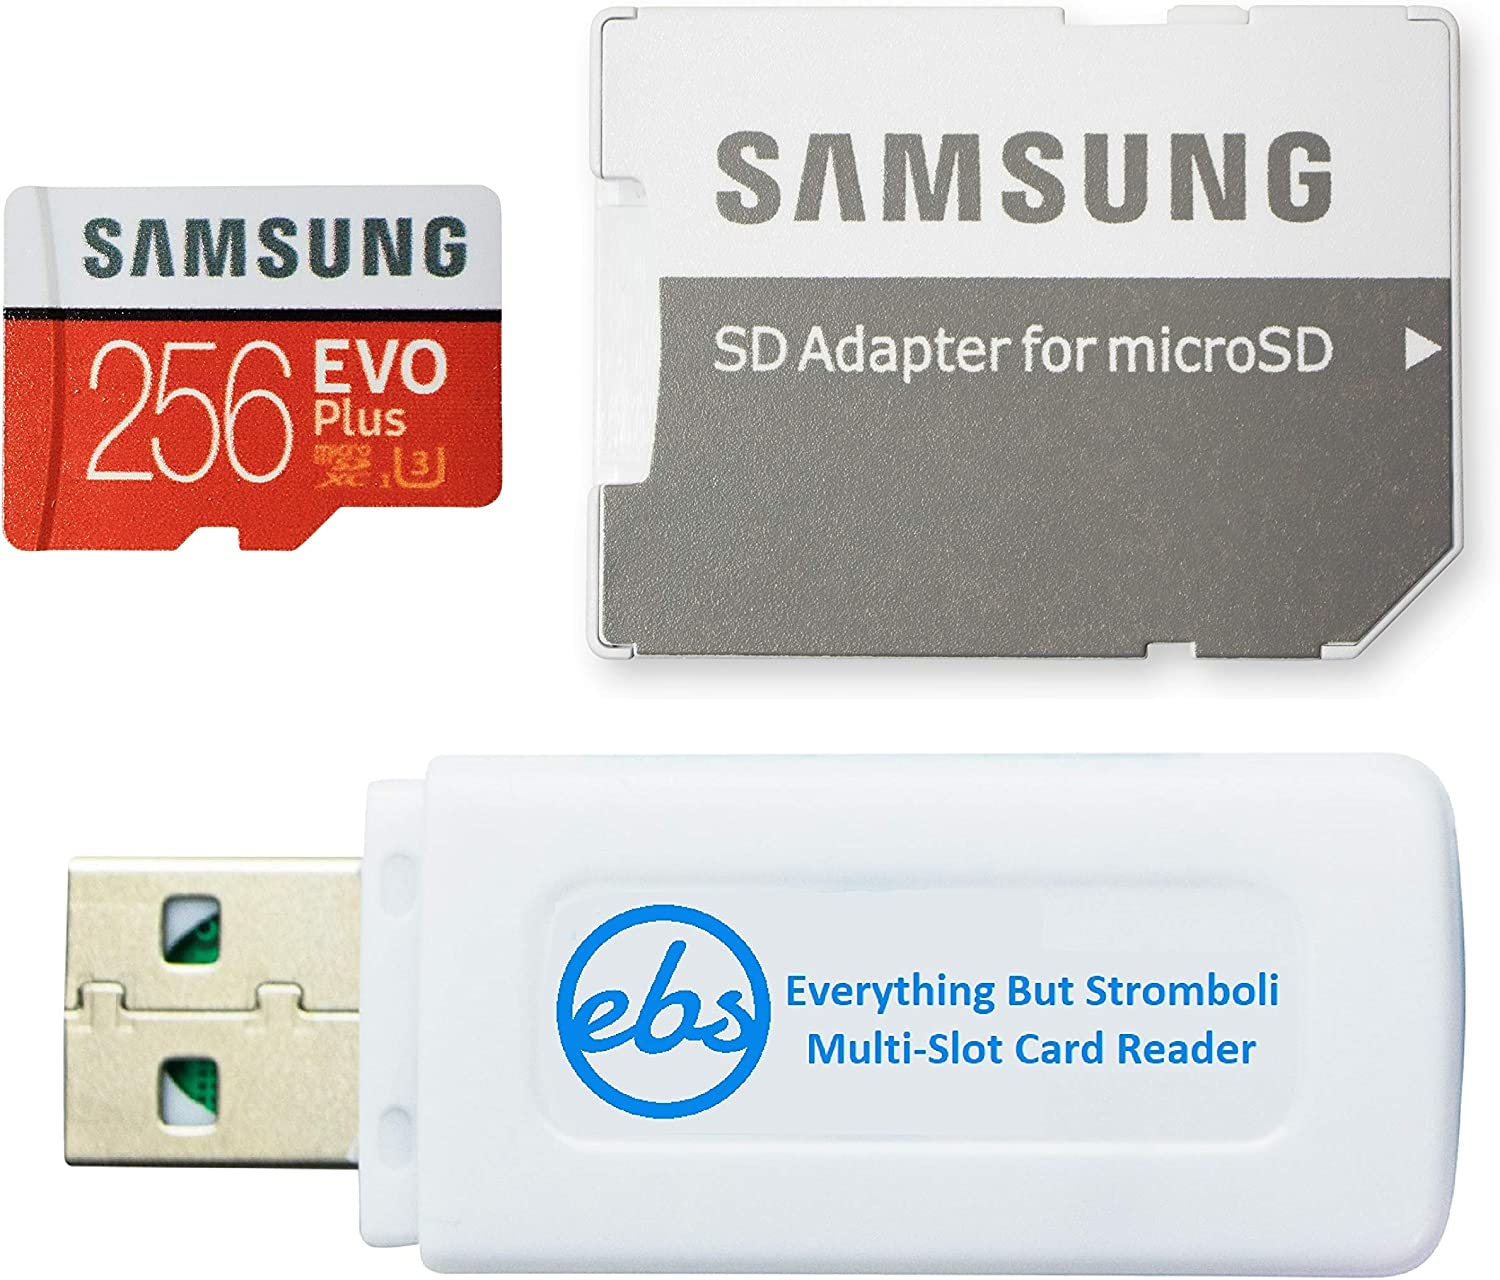 Samsung 256GB Micro SDXC EVO+ Plus Memory Card for Samsung Phone Works with Galaxy S20, S20+, S20 Ultra 5G, S10 Lite Phone (MB-MC256GA) Bundle with (1) Everything But Stromboli MicroSD Card Reader